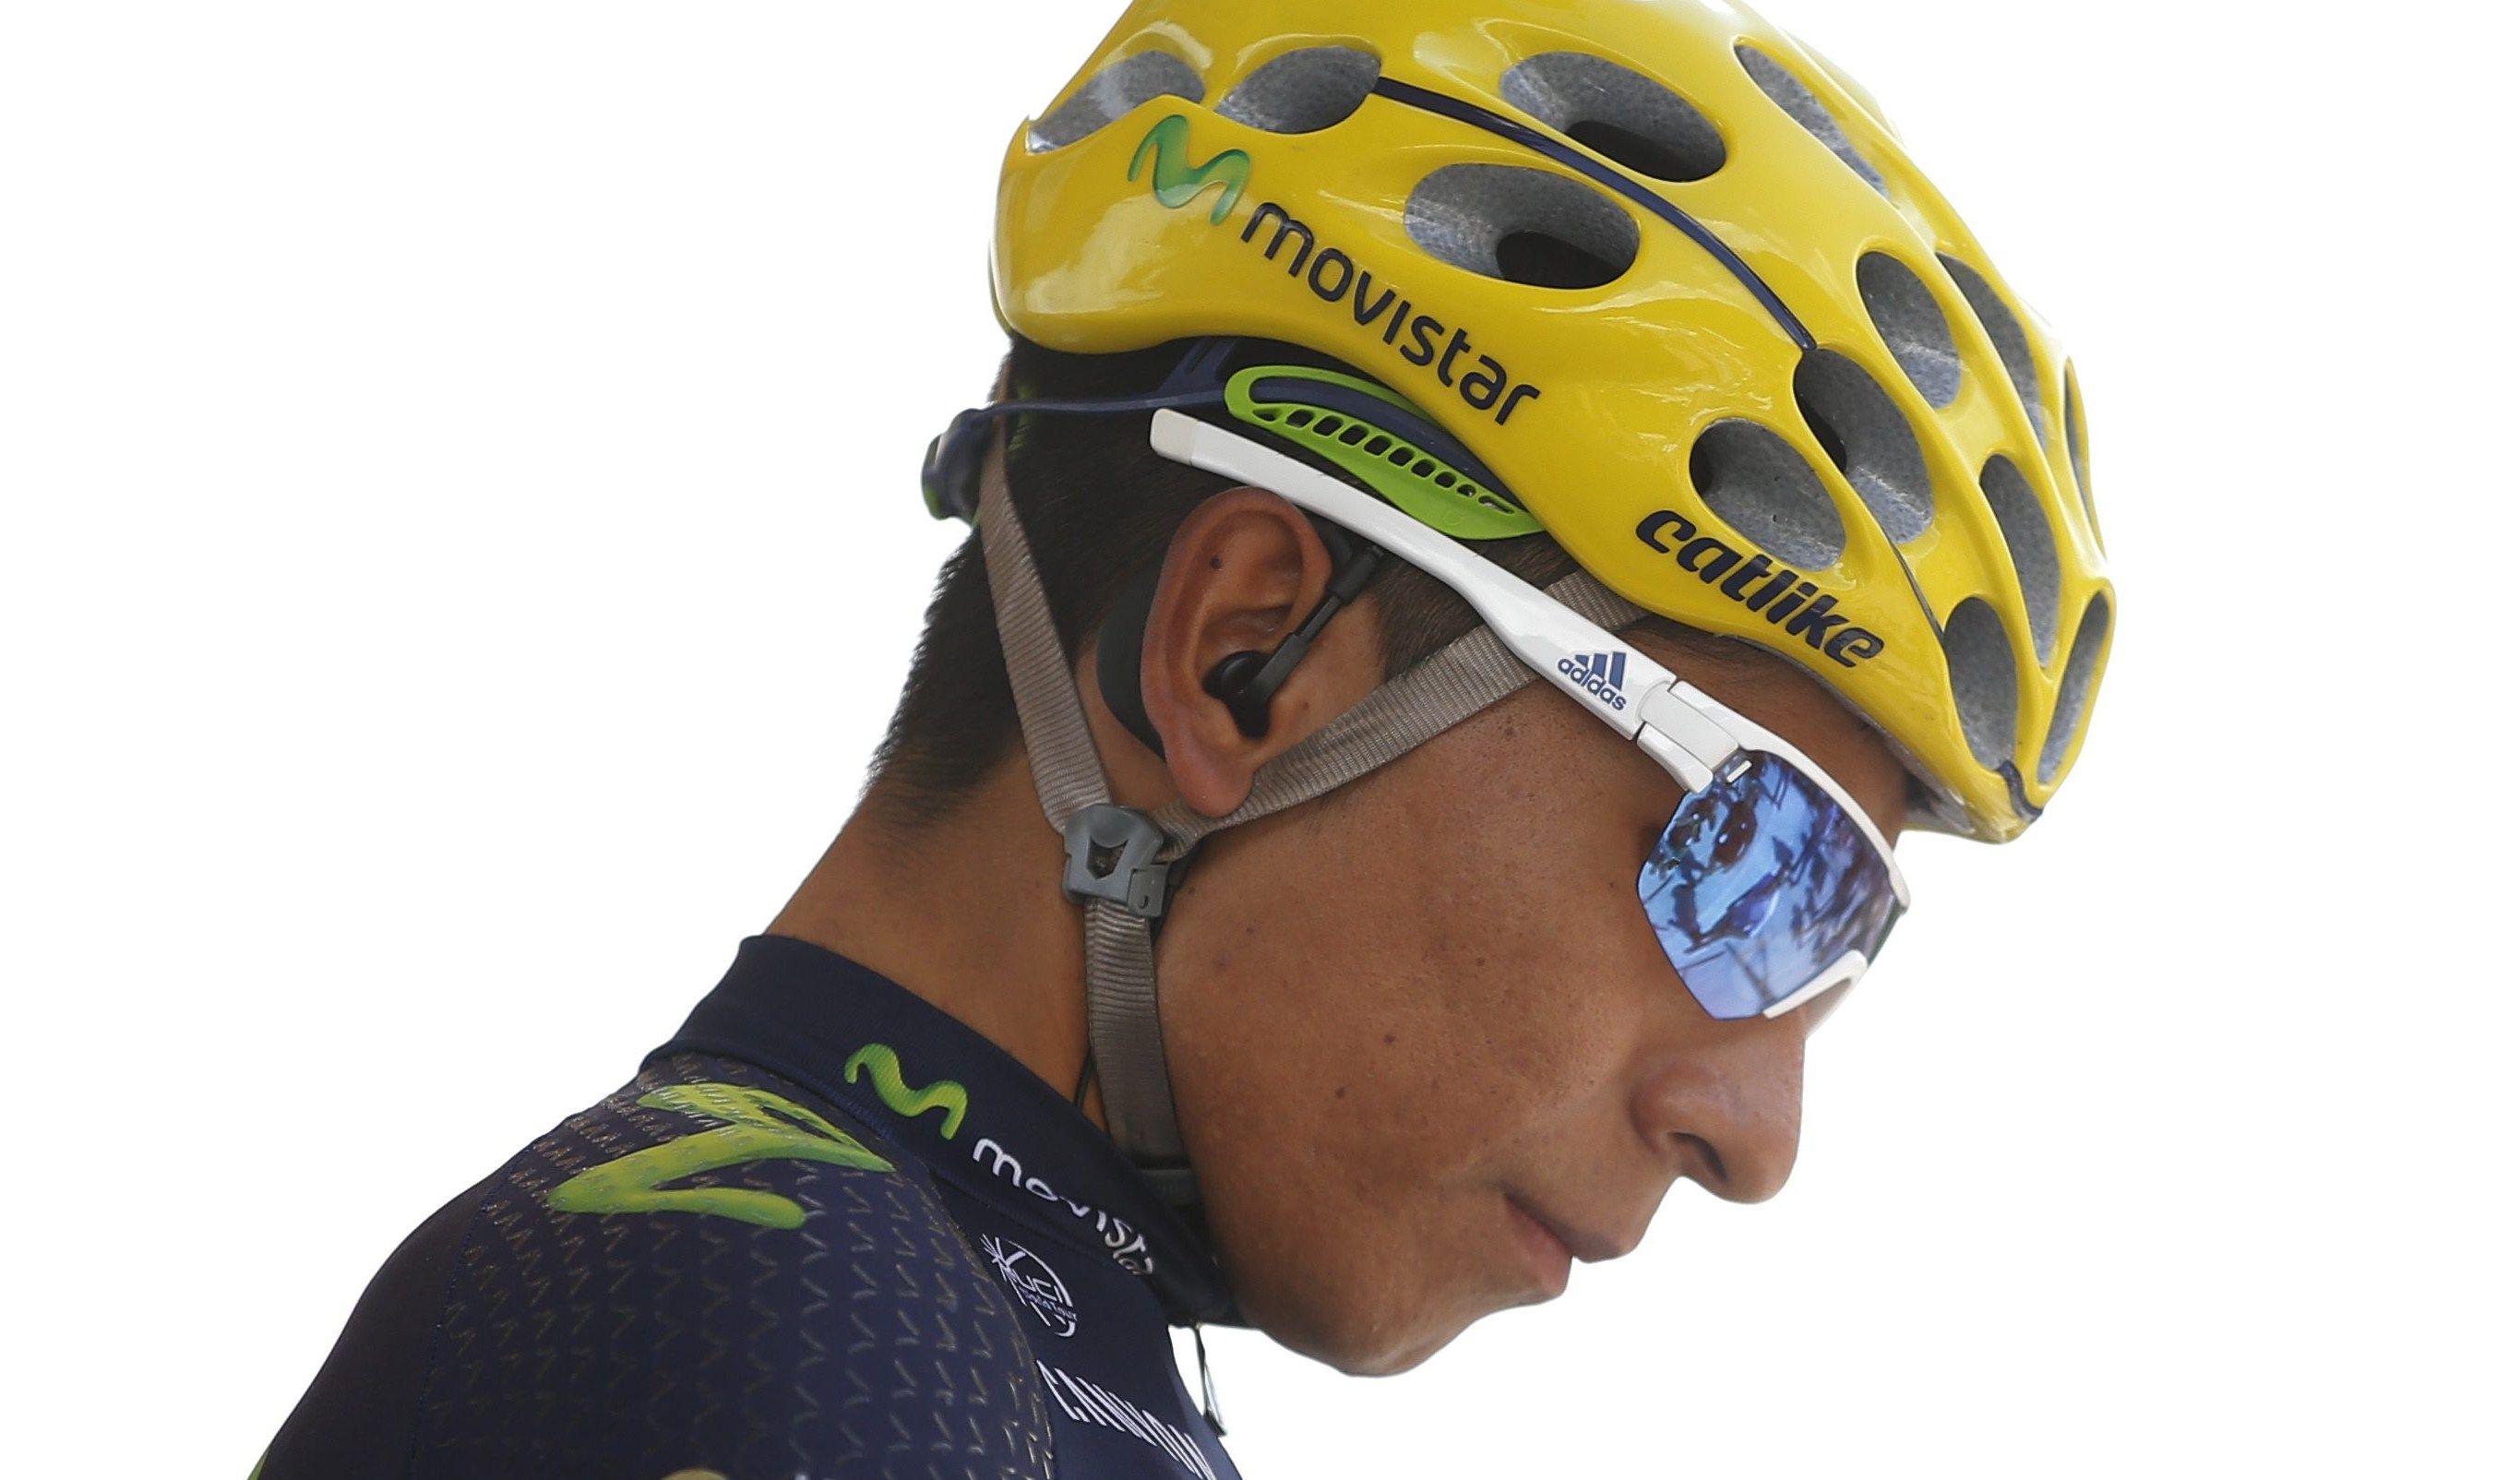 . Morzine-avoriaz (France), 23/07/2016.- Movistar team rider Nairo Alexander Quintana of Colombia seen prior to the 20th stage of the 103rd edition of the Tour de France cycling race over 146.5 Km between megeve and Morzine-Avoriaz, France, 23 July 2016. (Ciclismo, Francia) EFE/EPA/YOAN VALAT